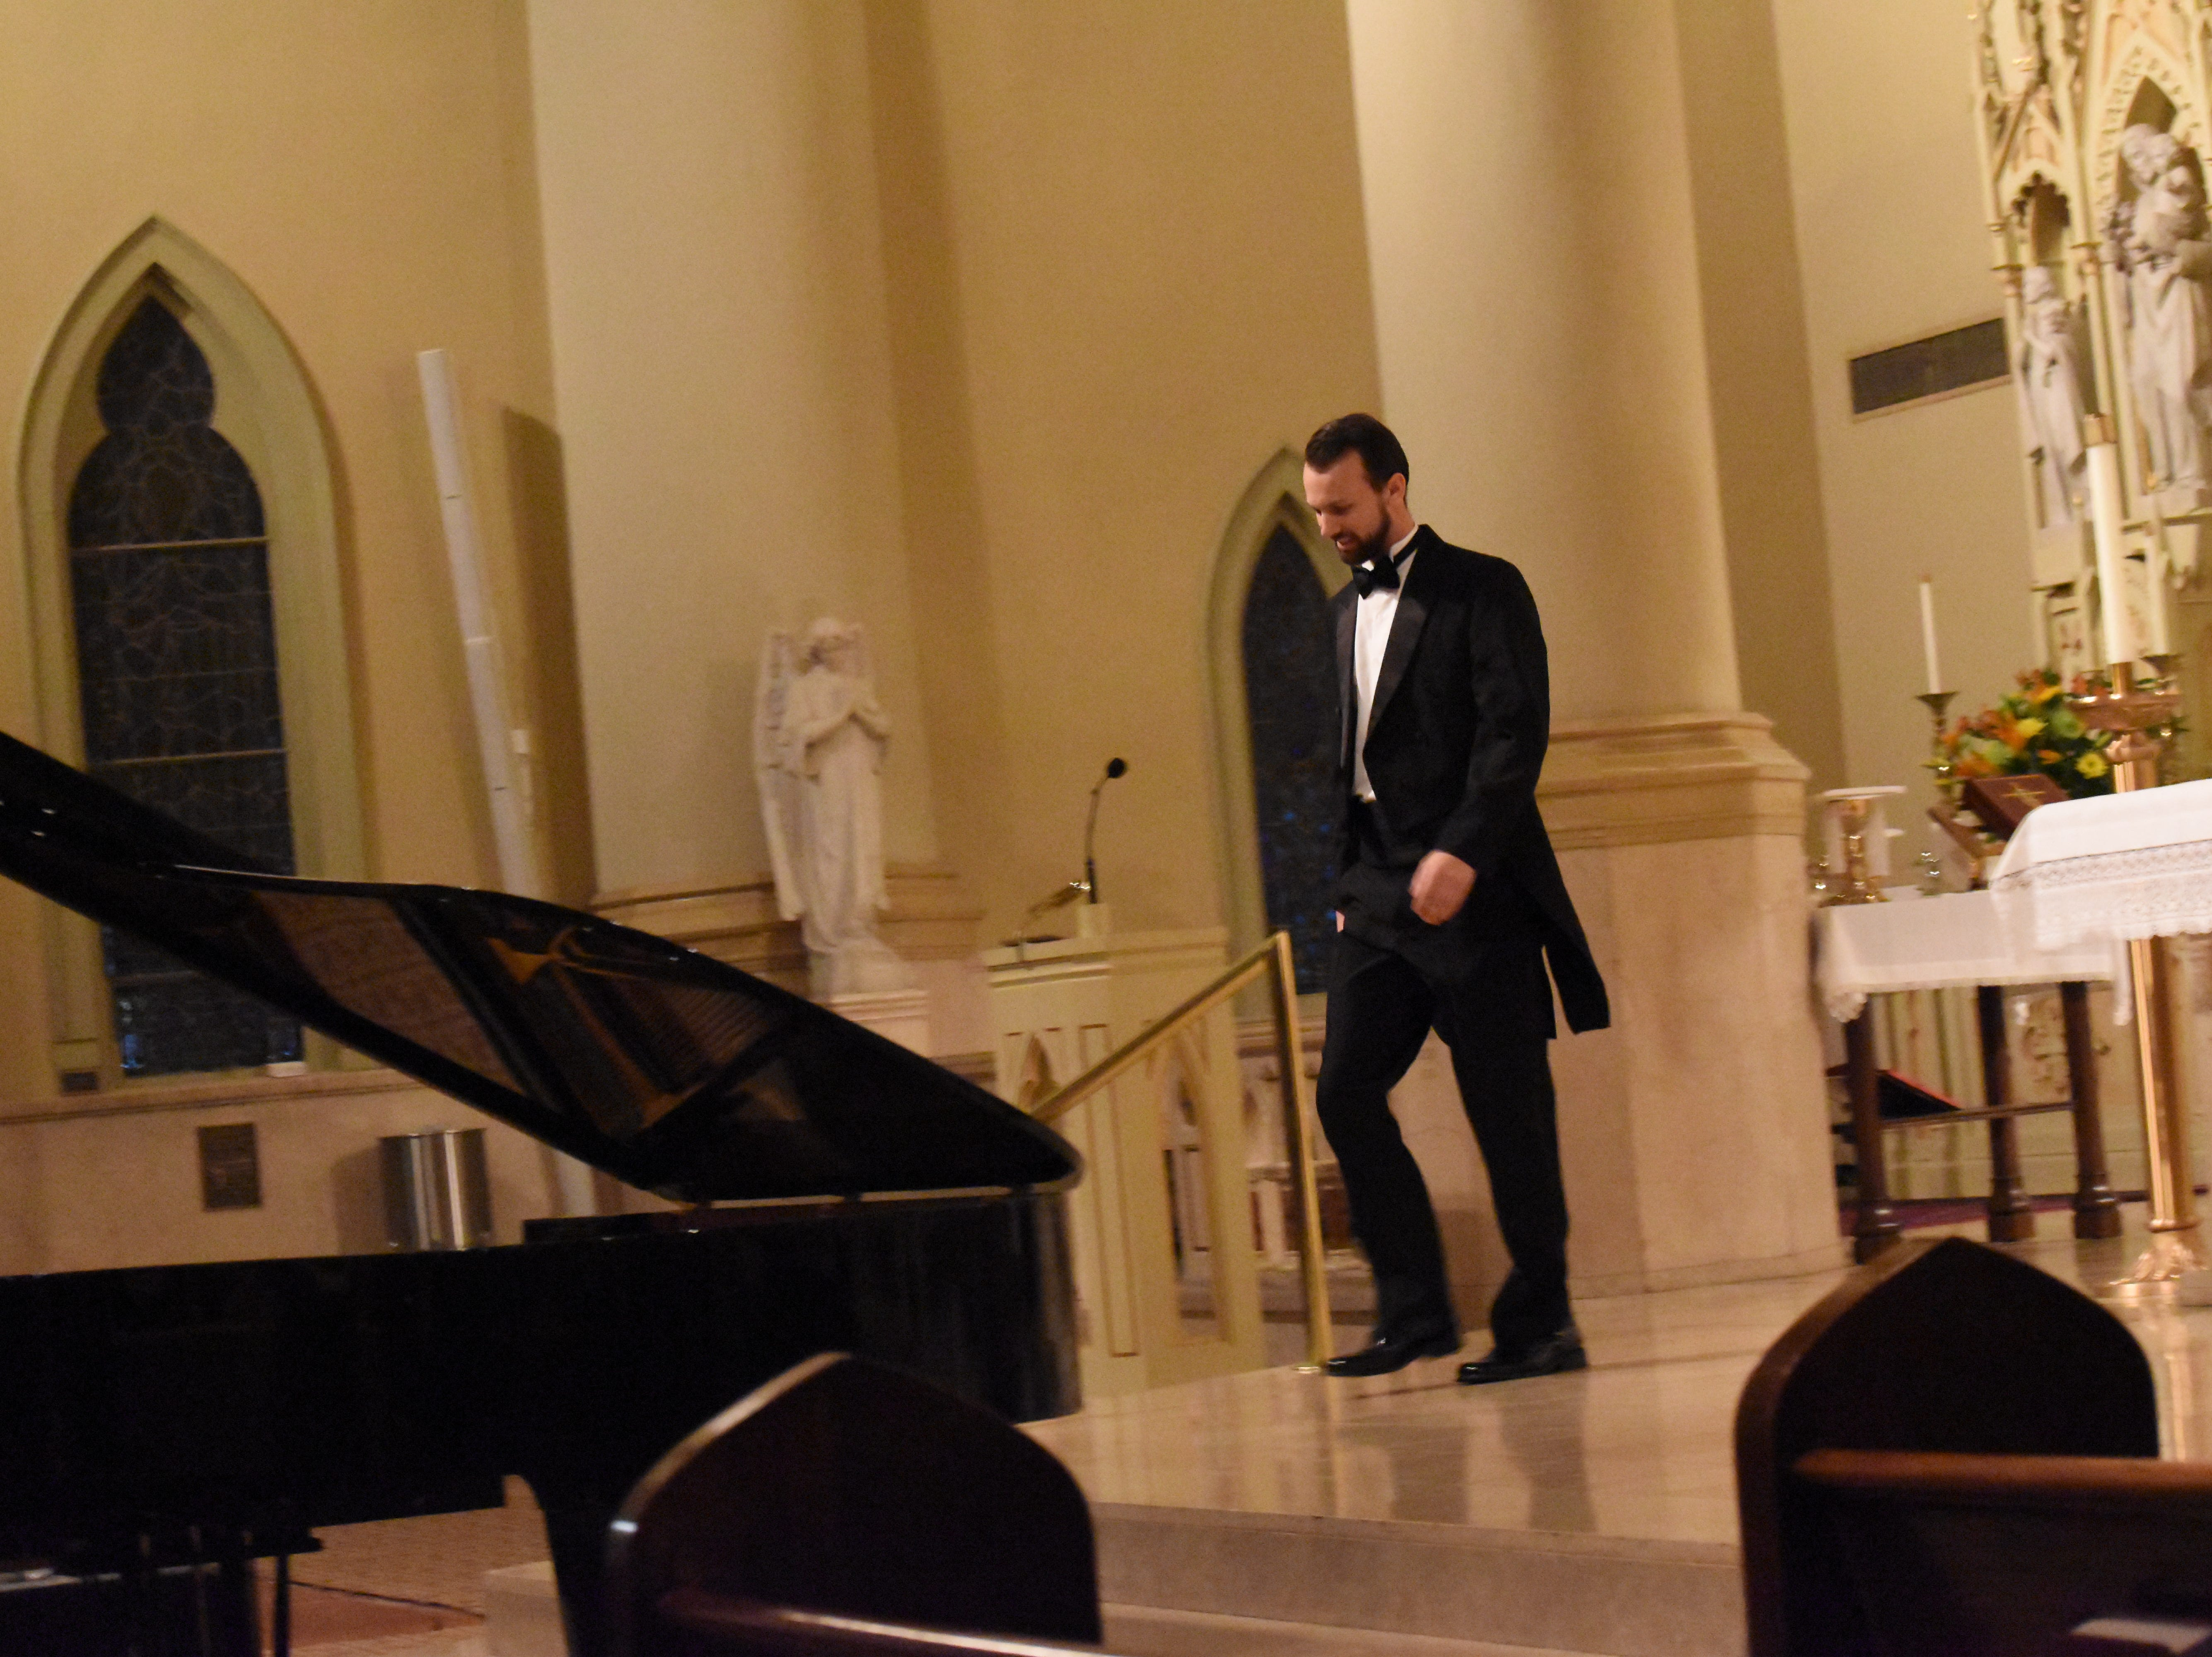 Pianist Joseph Kingma performed Mozart, Chopin and Mendelssohn at the St. Francis Xavier Cathedral Music Series held Friday, Jan. 18, 2019. Kingma is an assistant professor of piano and coordinator of the keyboard division at Palm Beach Atlantic University. He has been invited to teach and perform at colleges and universities across the country. Kingma also judges competitions. The music series is a free event. The next concert series is set for Thursday, March 28 featuring the Baton Rouge Early Vocal Ensemble.